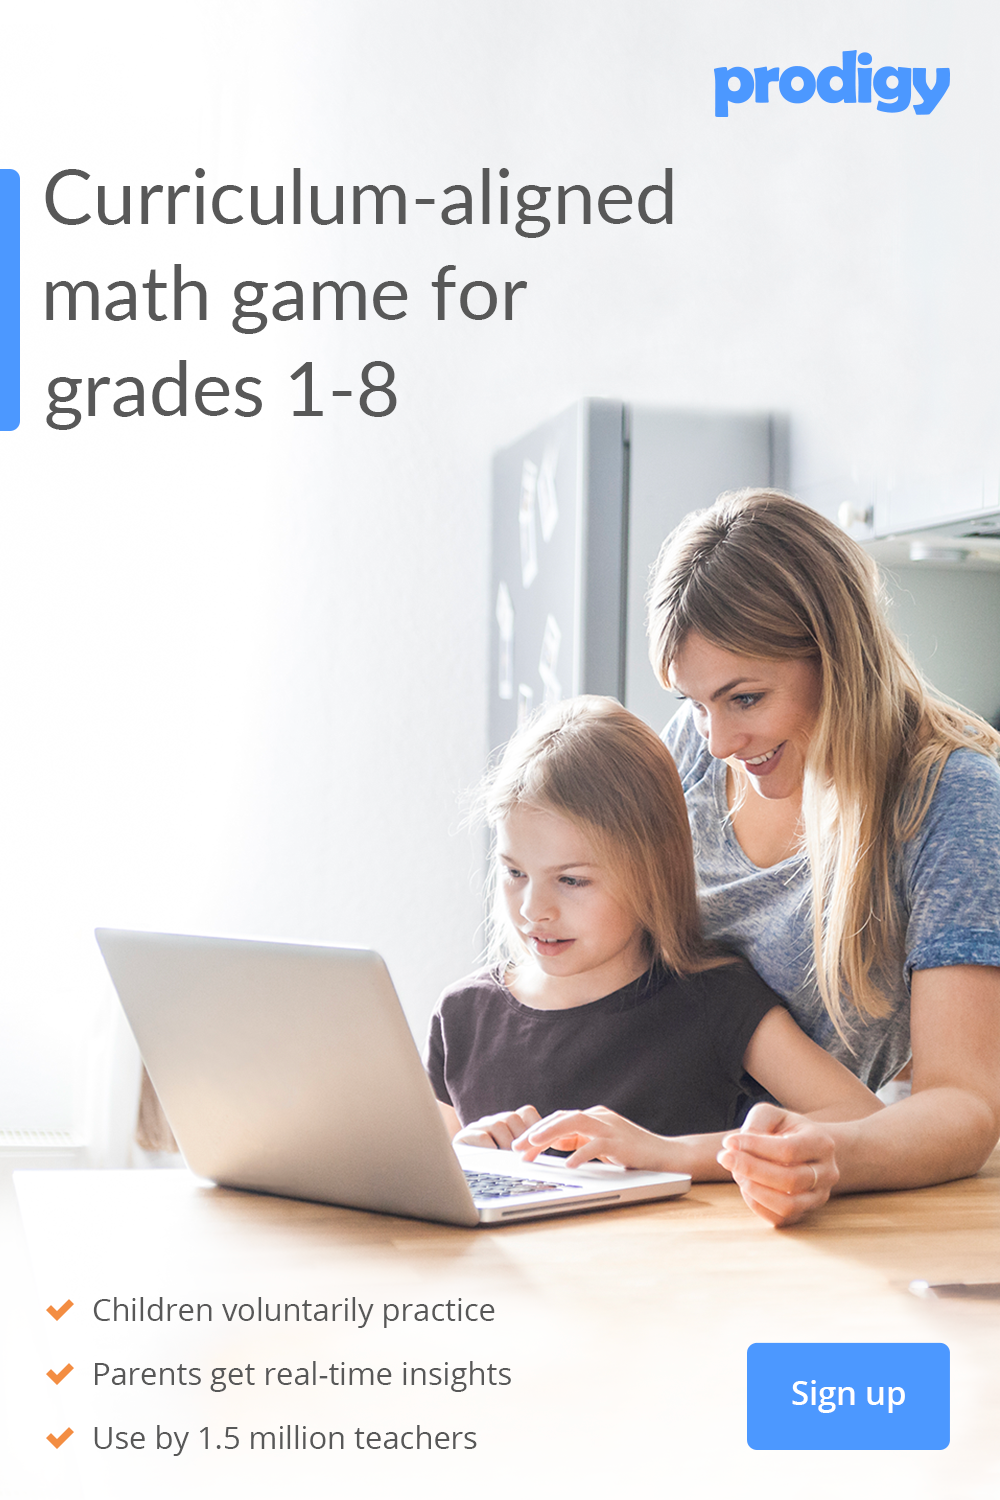 Parents motivate your child's math learning with Prodigy